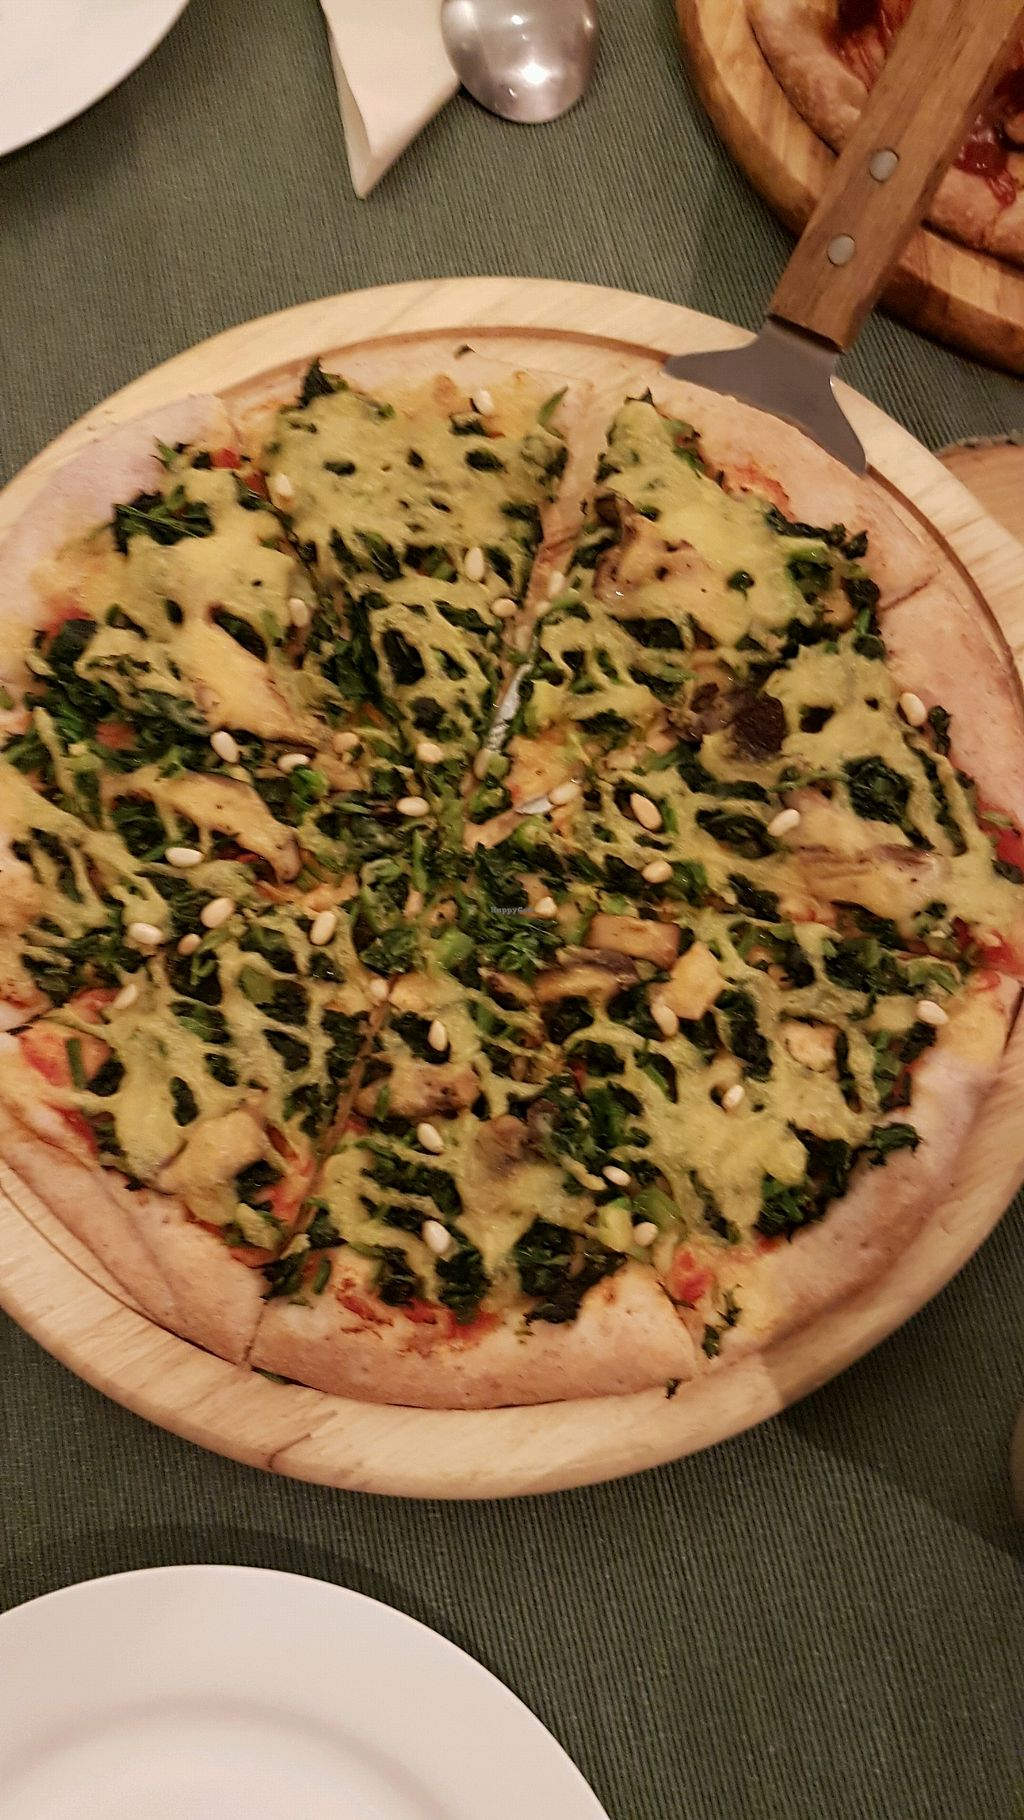 """Photo of Cloud Kitchen  by <a href=""""/members/profile/ElisabethF%C3%A9line"""">ElisabethFéline</a> <br/>spinach pizza <br/> April 7, 2018  - <a href='/contact/abuse/image/64283/381769'>Report</a>"""